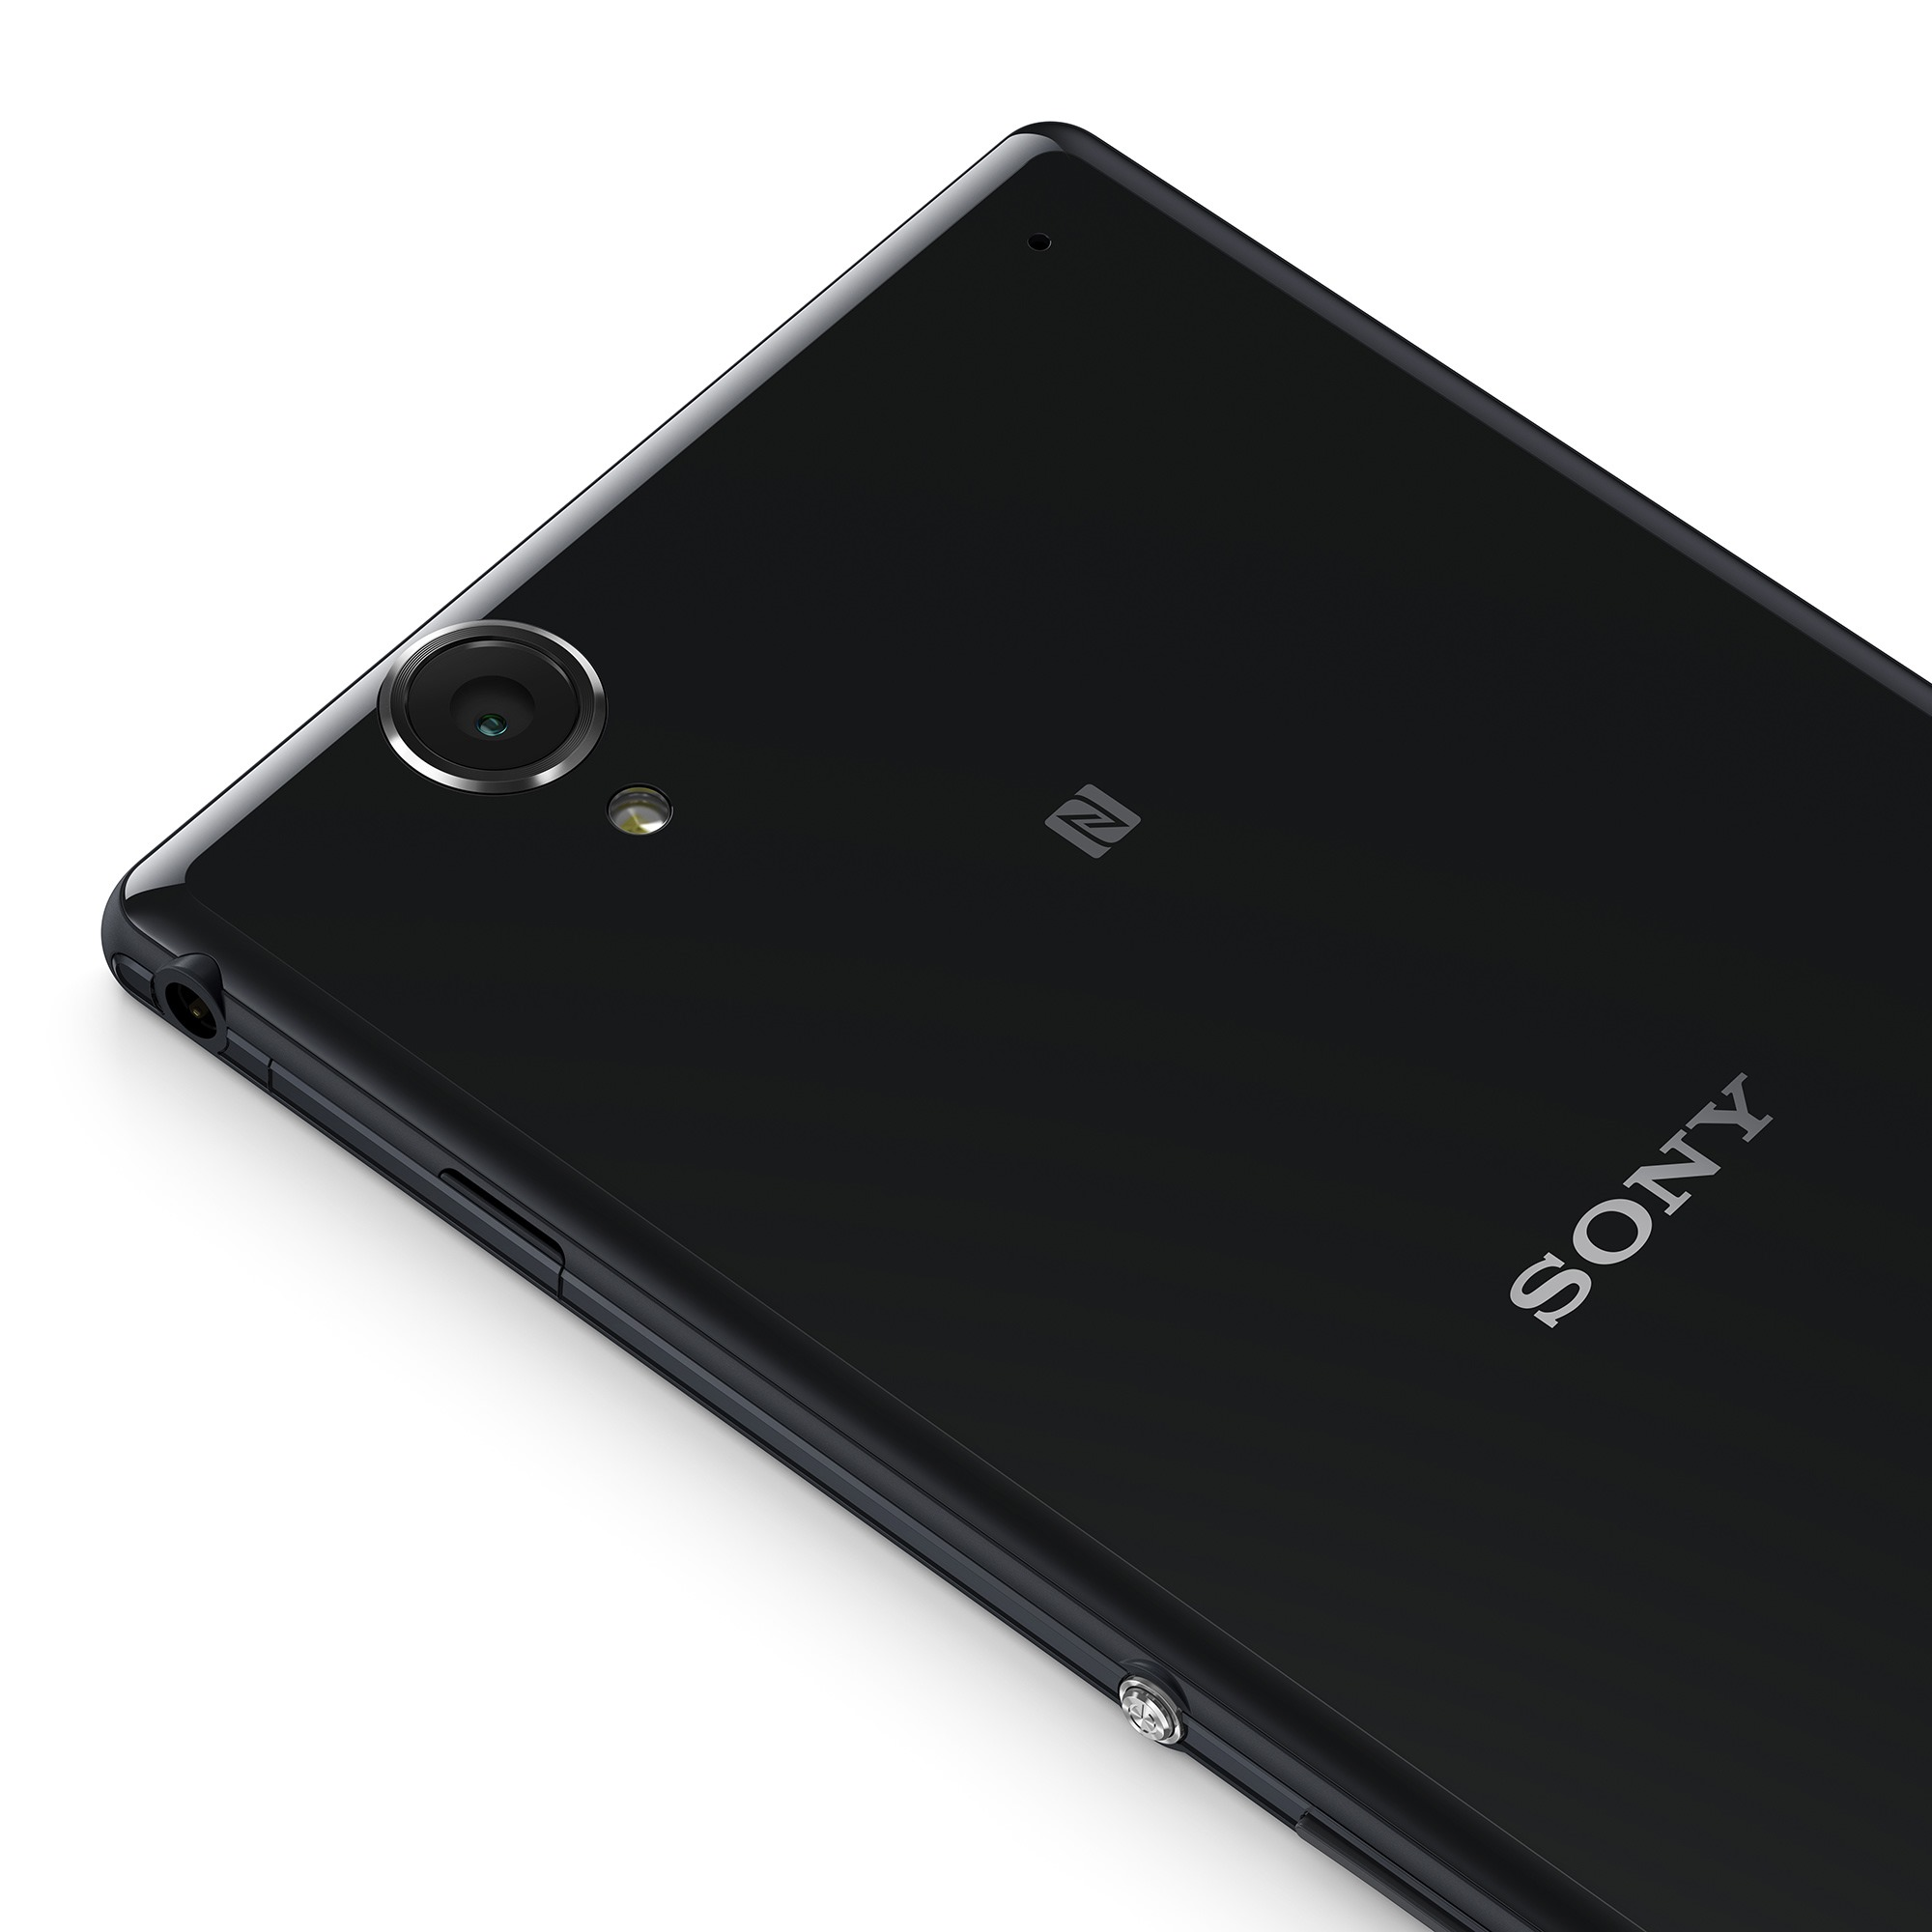 Sony Announces The 4 Quot Xperia E1 And 6 Quot Xperia T2 Ultra